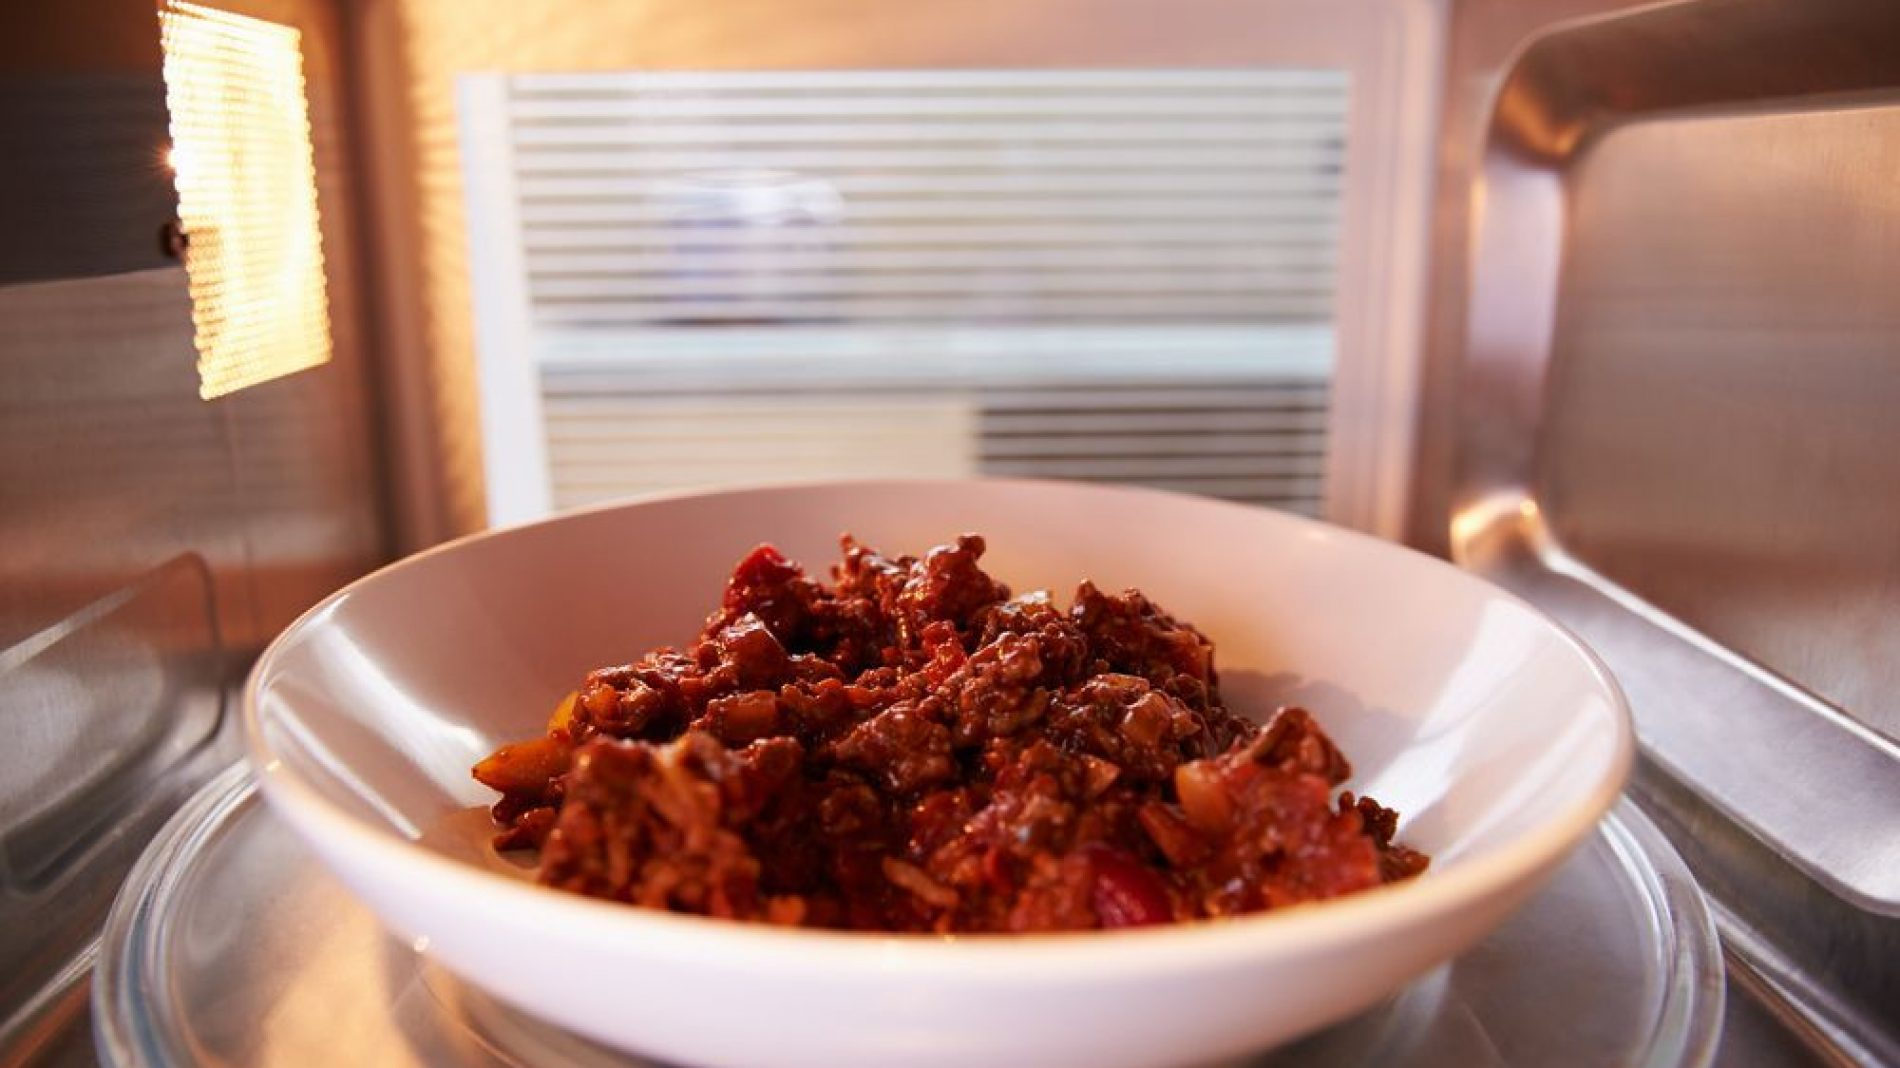 chillimicrowave